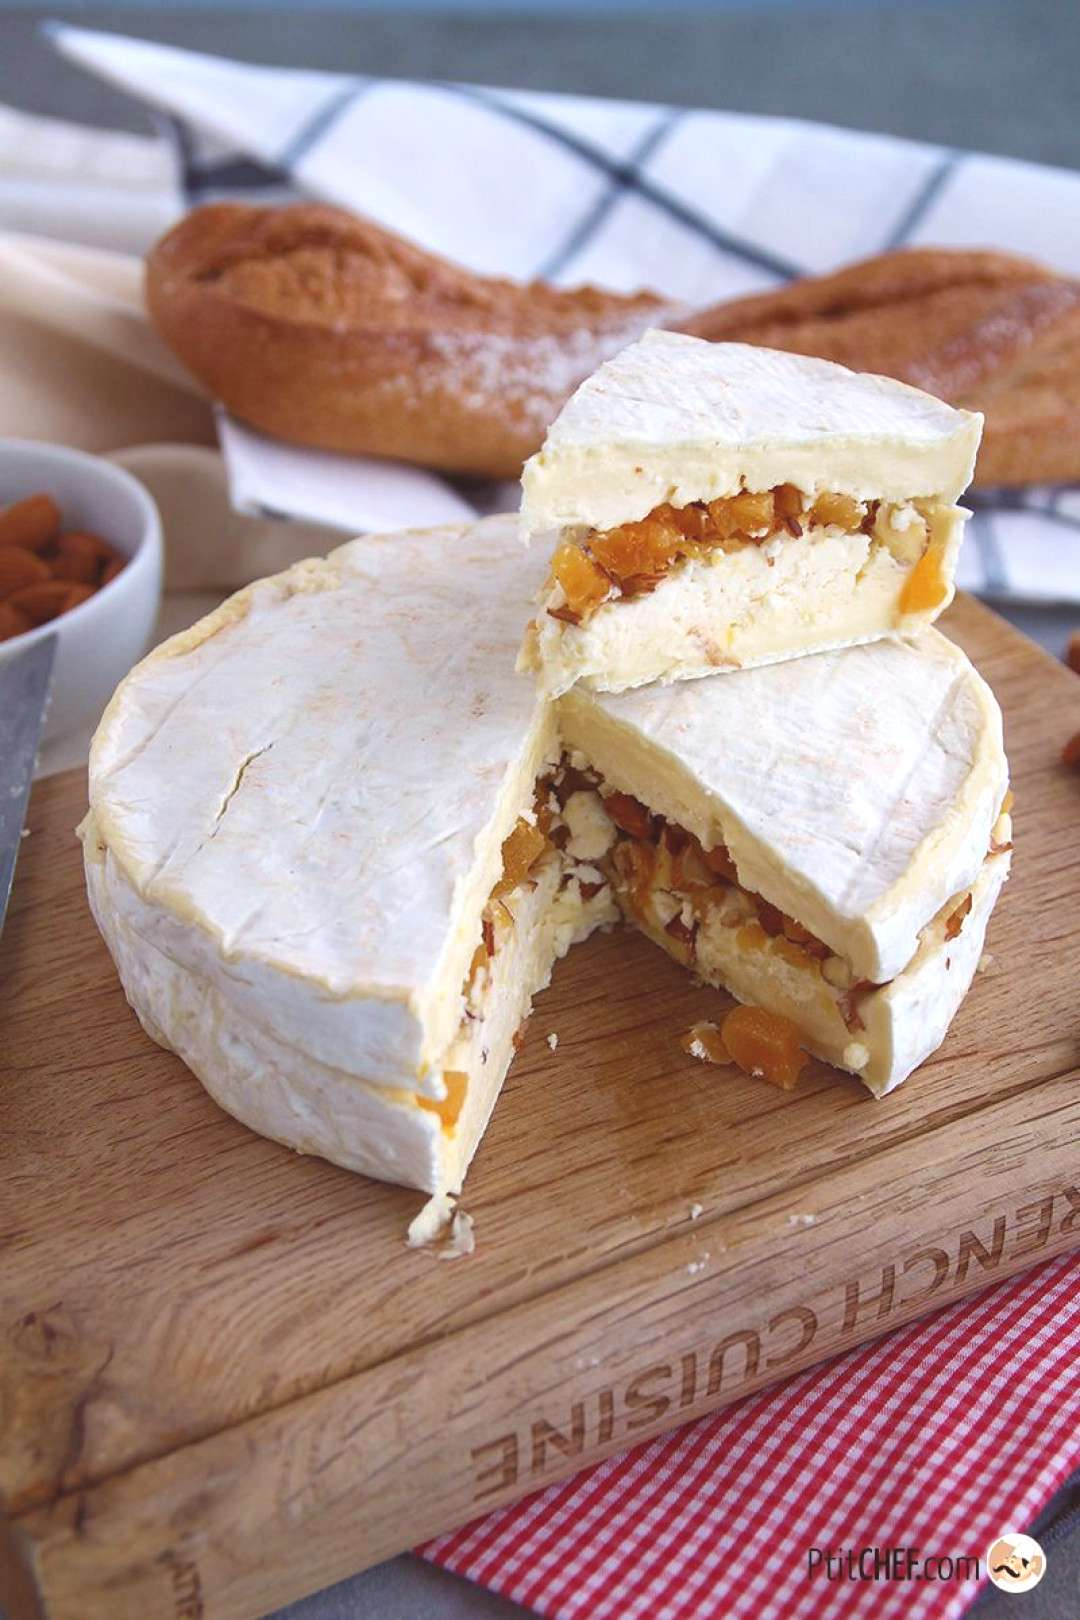 Brie stuffed with apricots and almonds, Ptitchef recipe - -